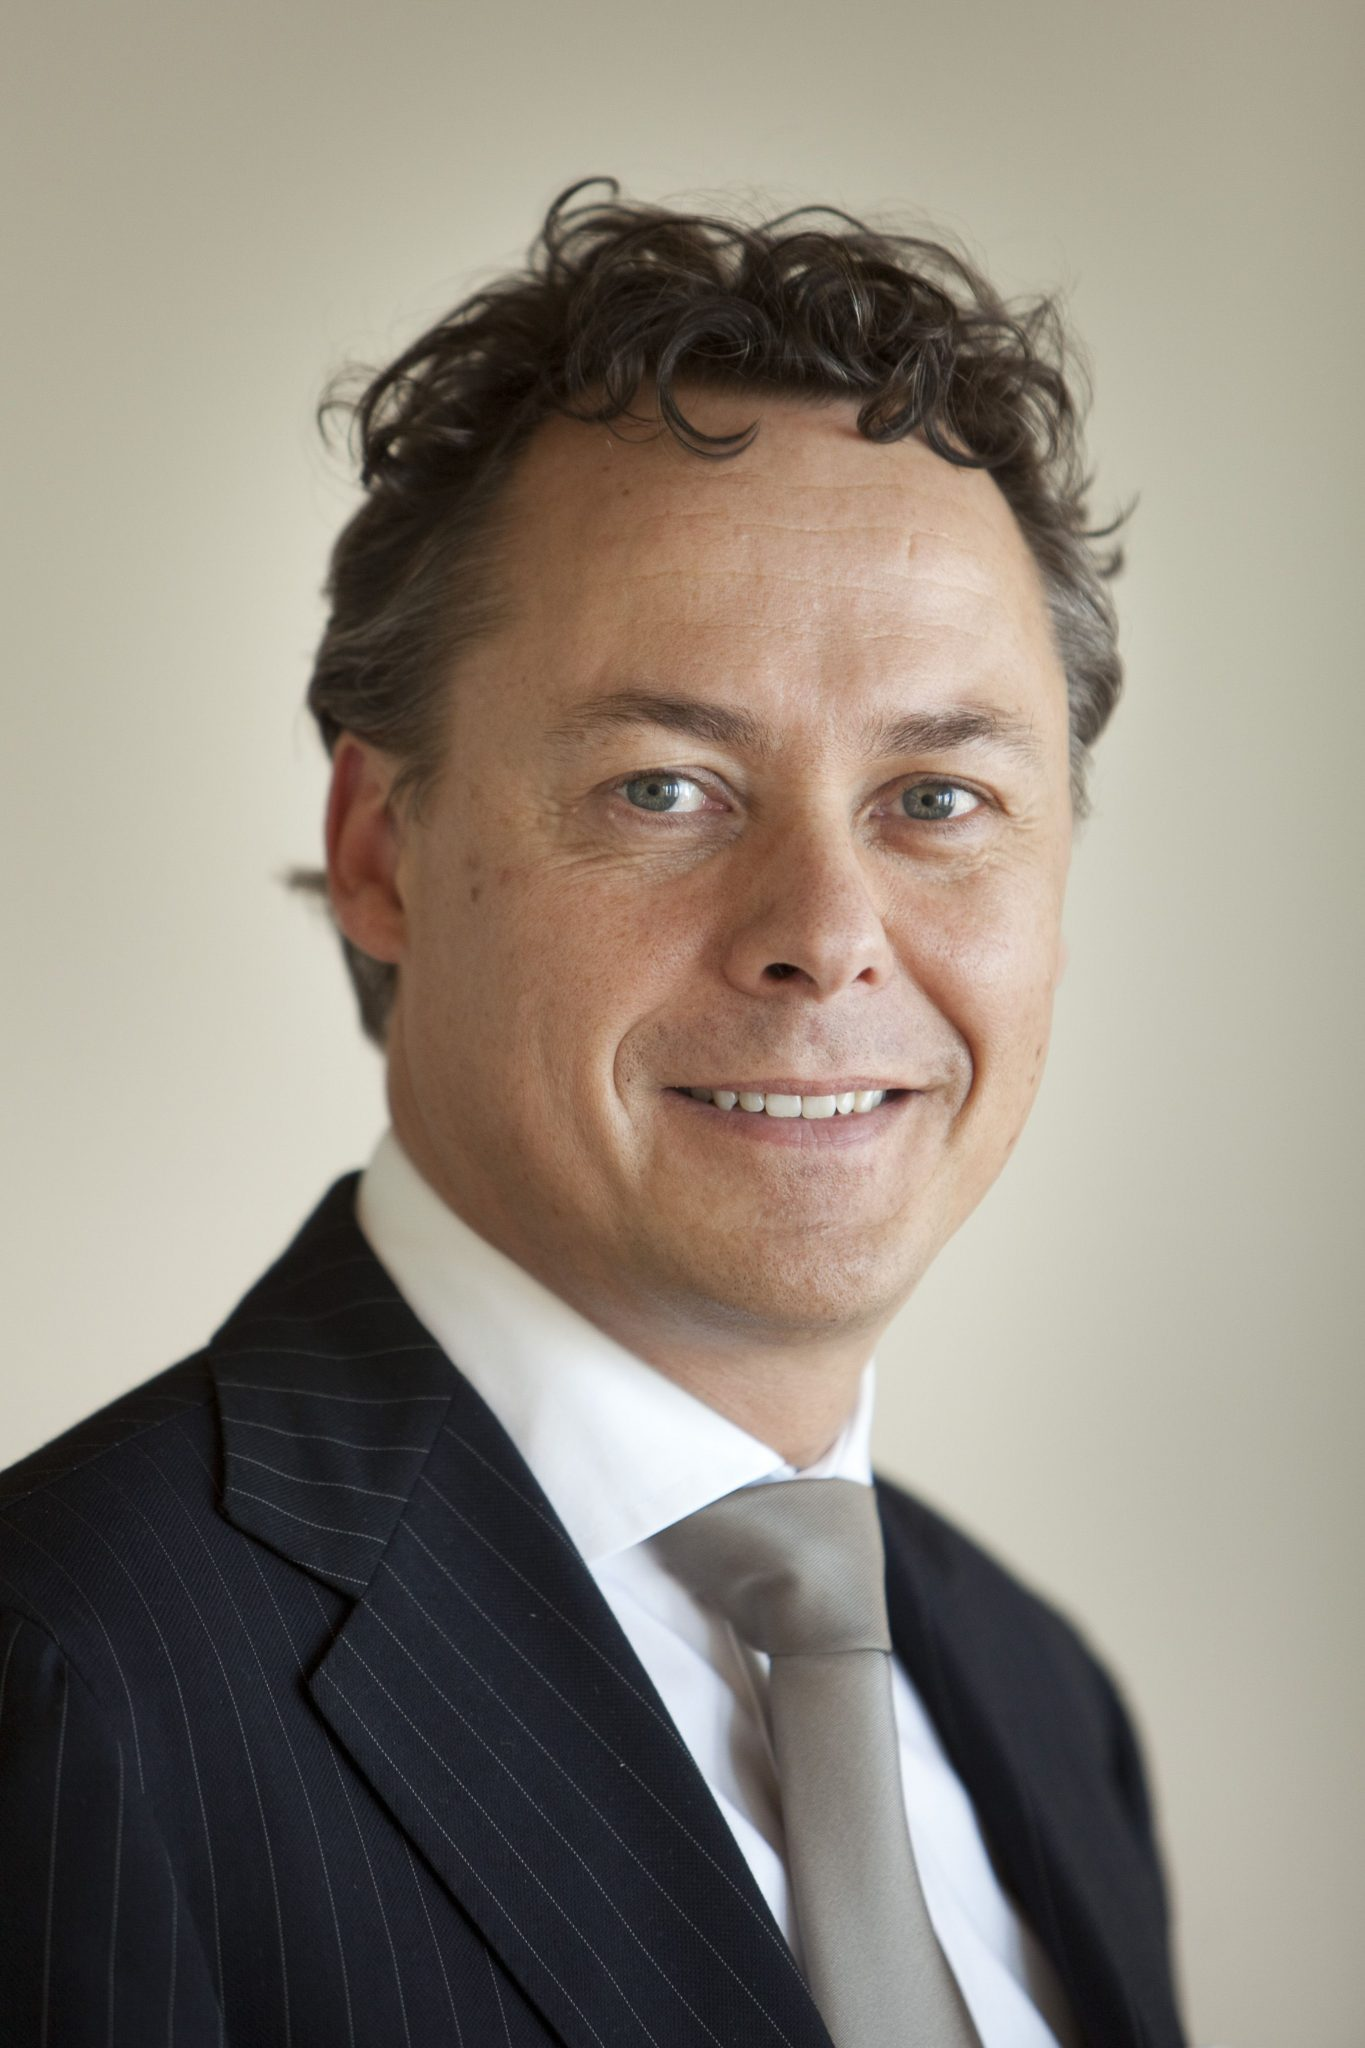 Ralph Hamers, CEO of ING Group